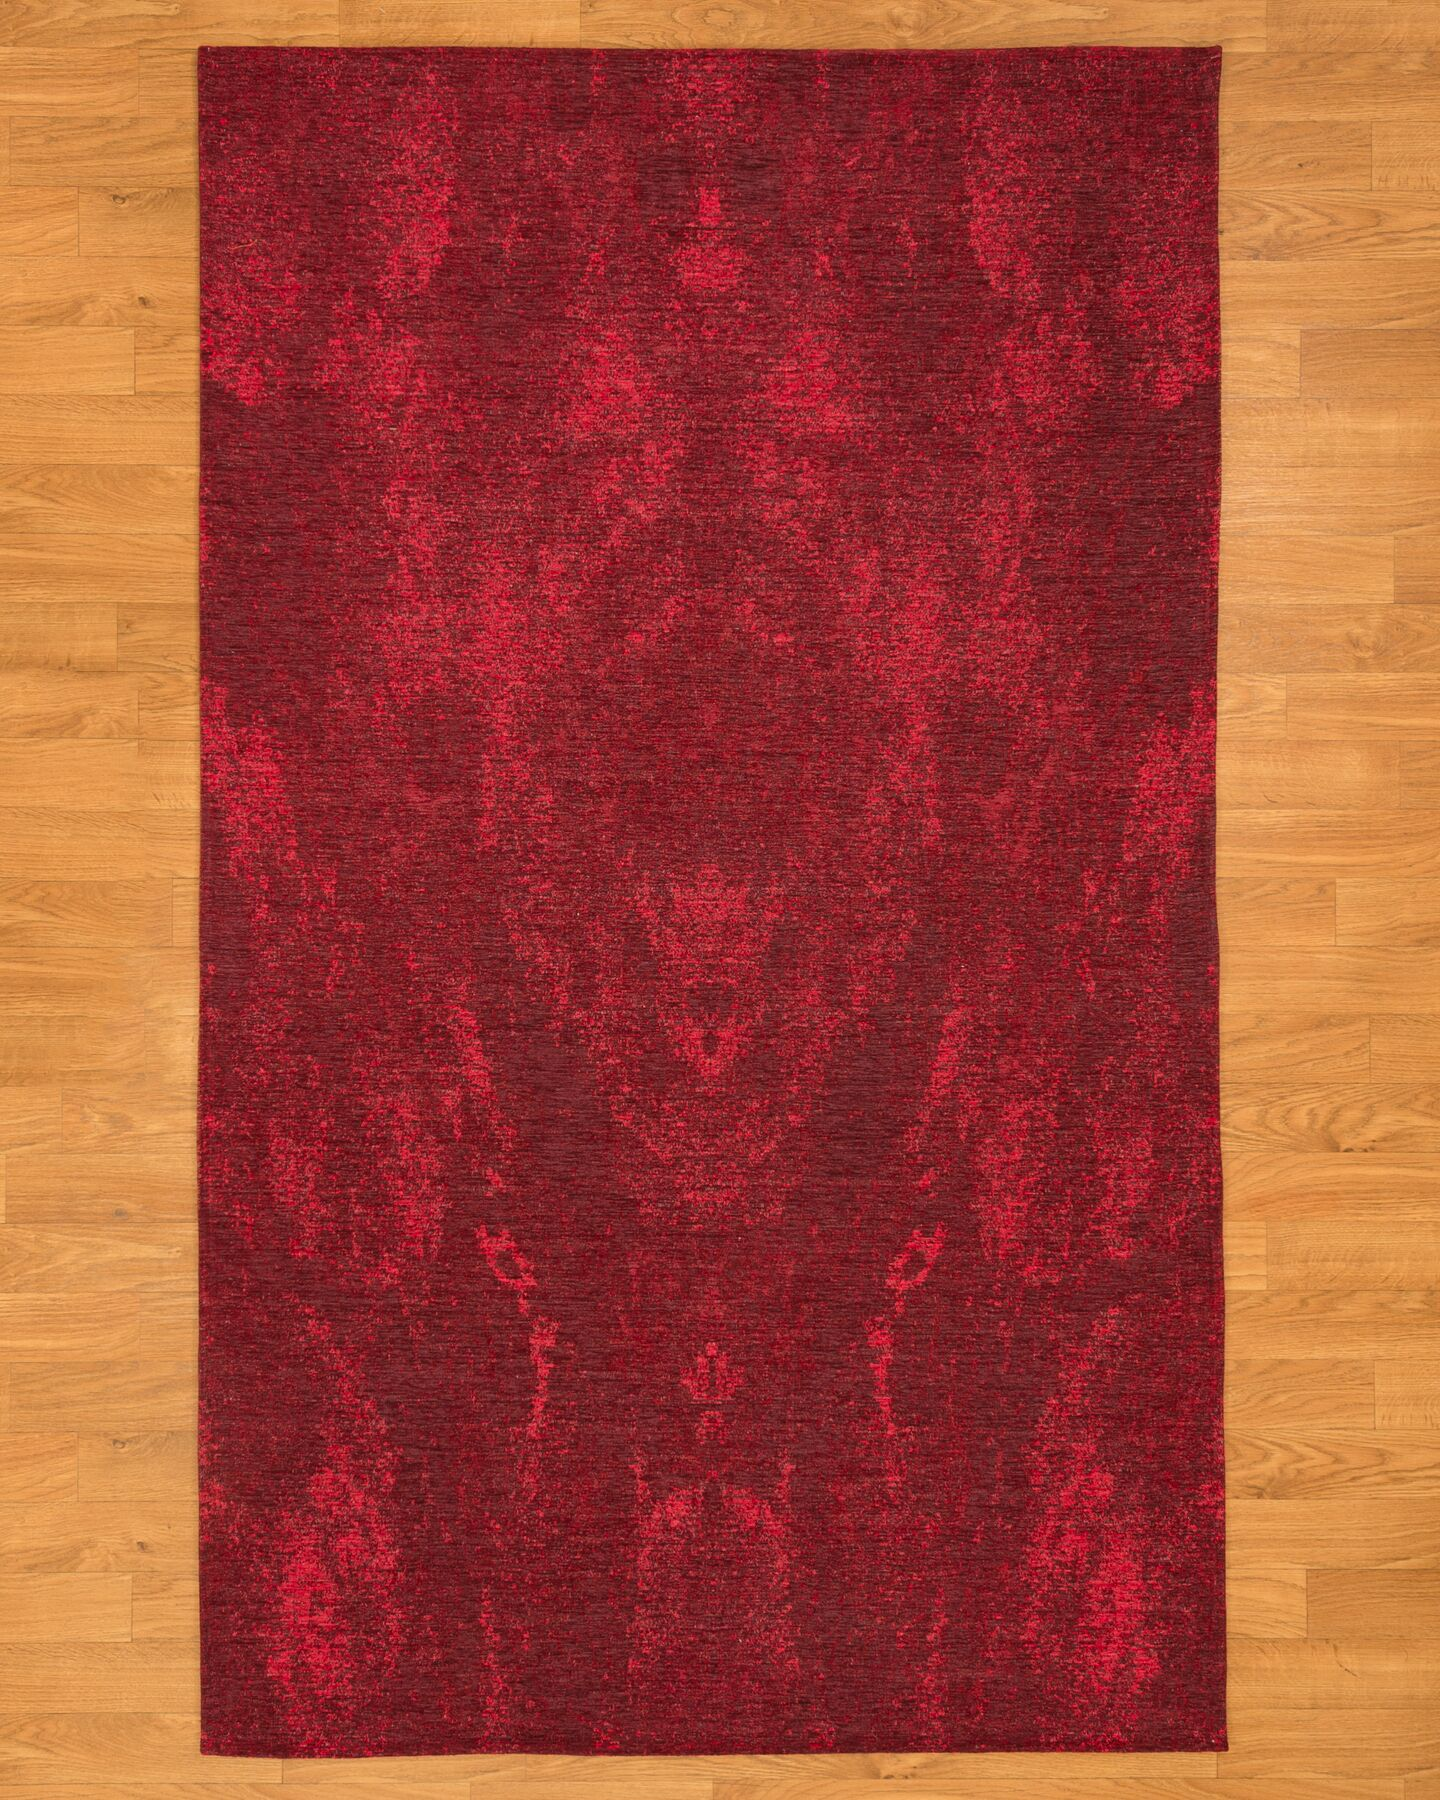 Anegada Red Area Rug Rug Size: Rectangle 6' x 9'